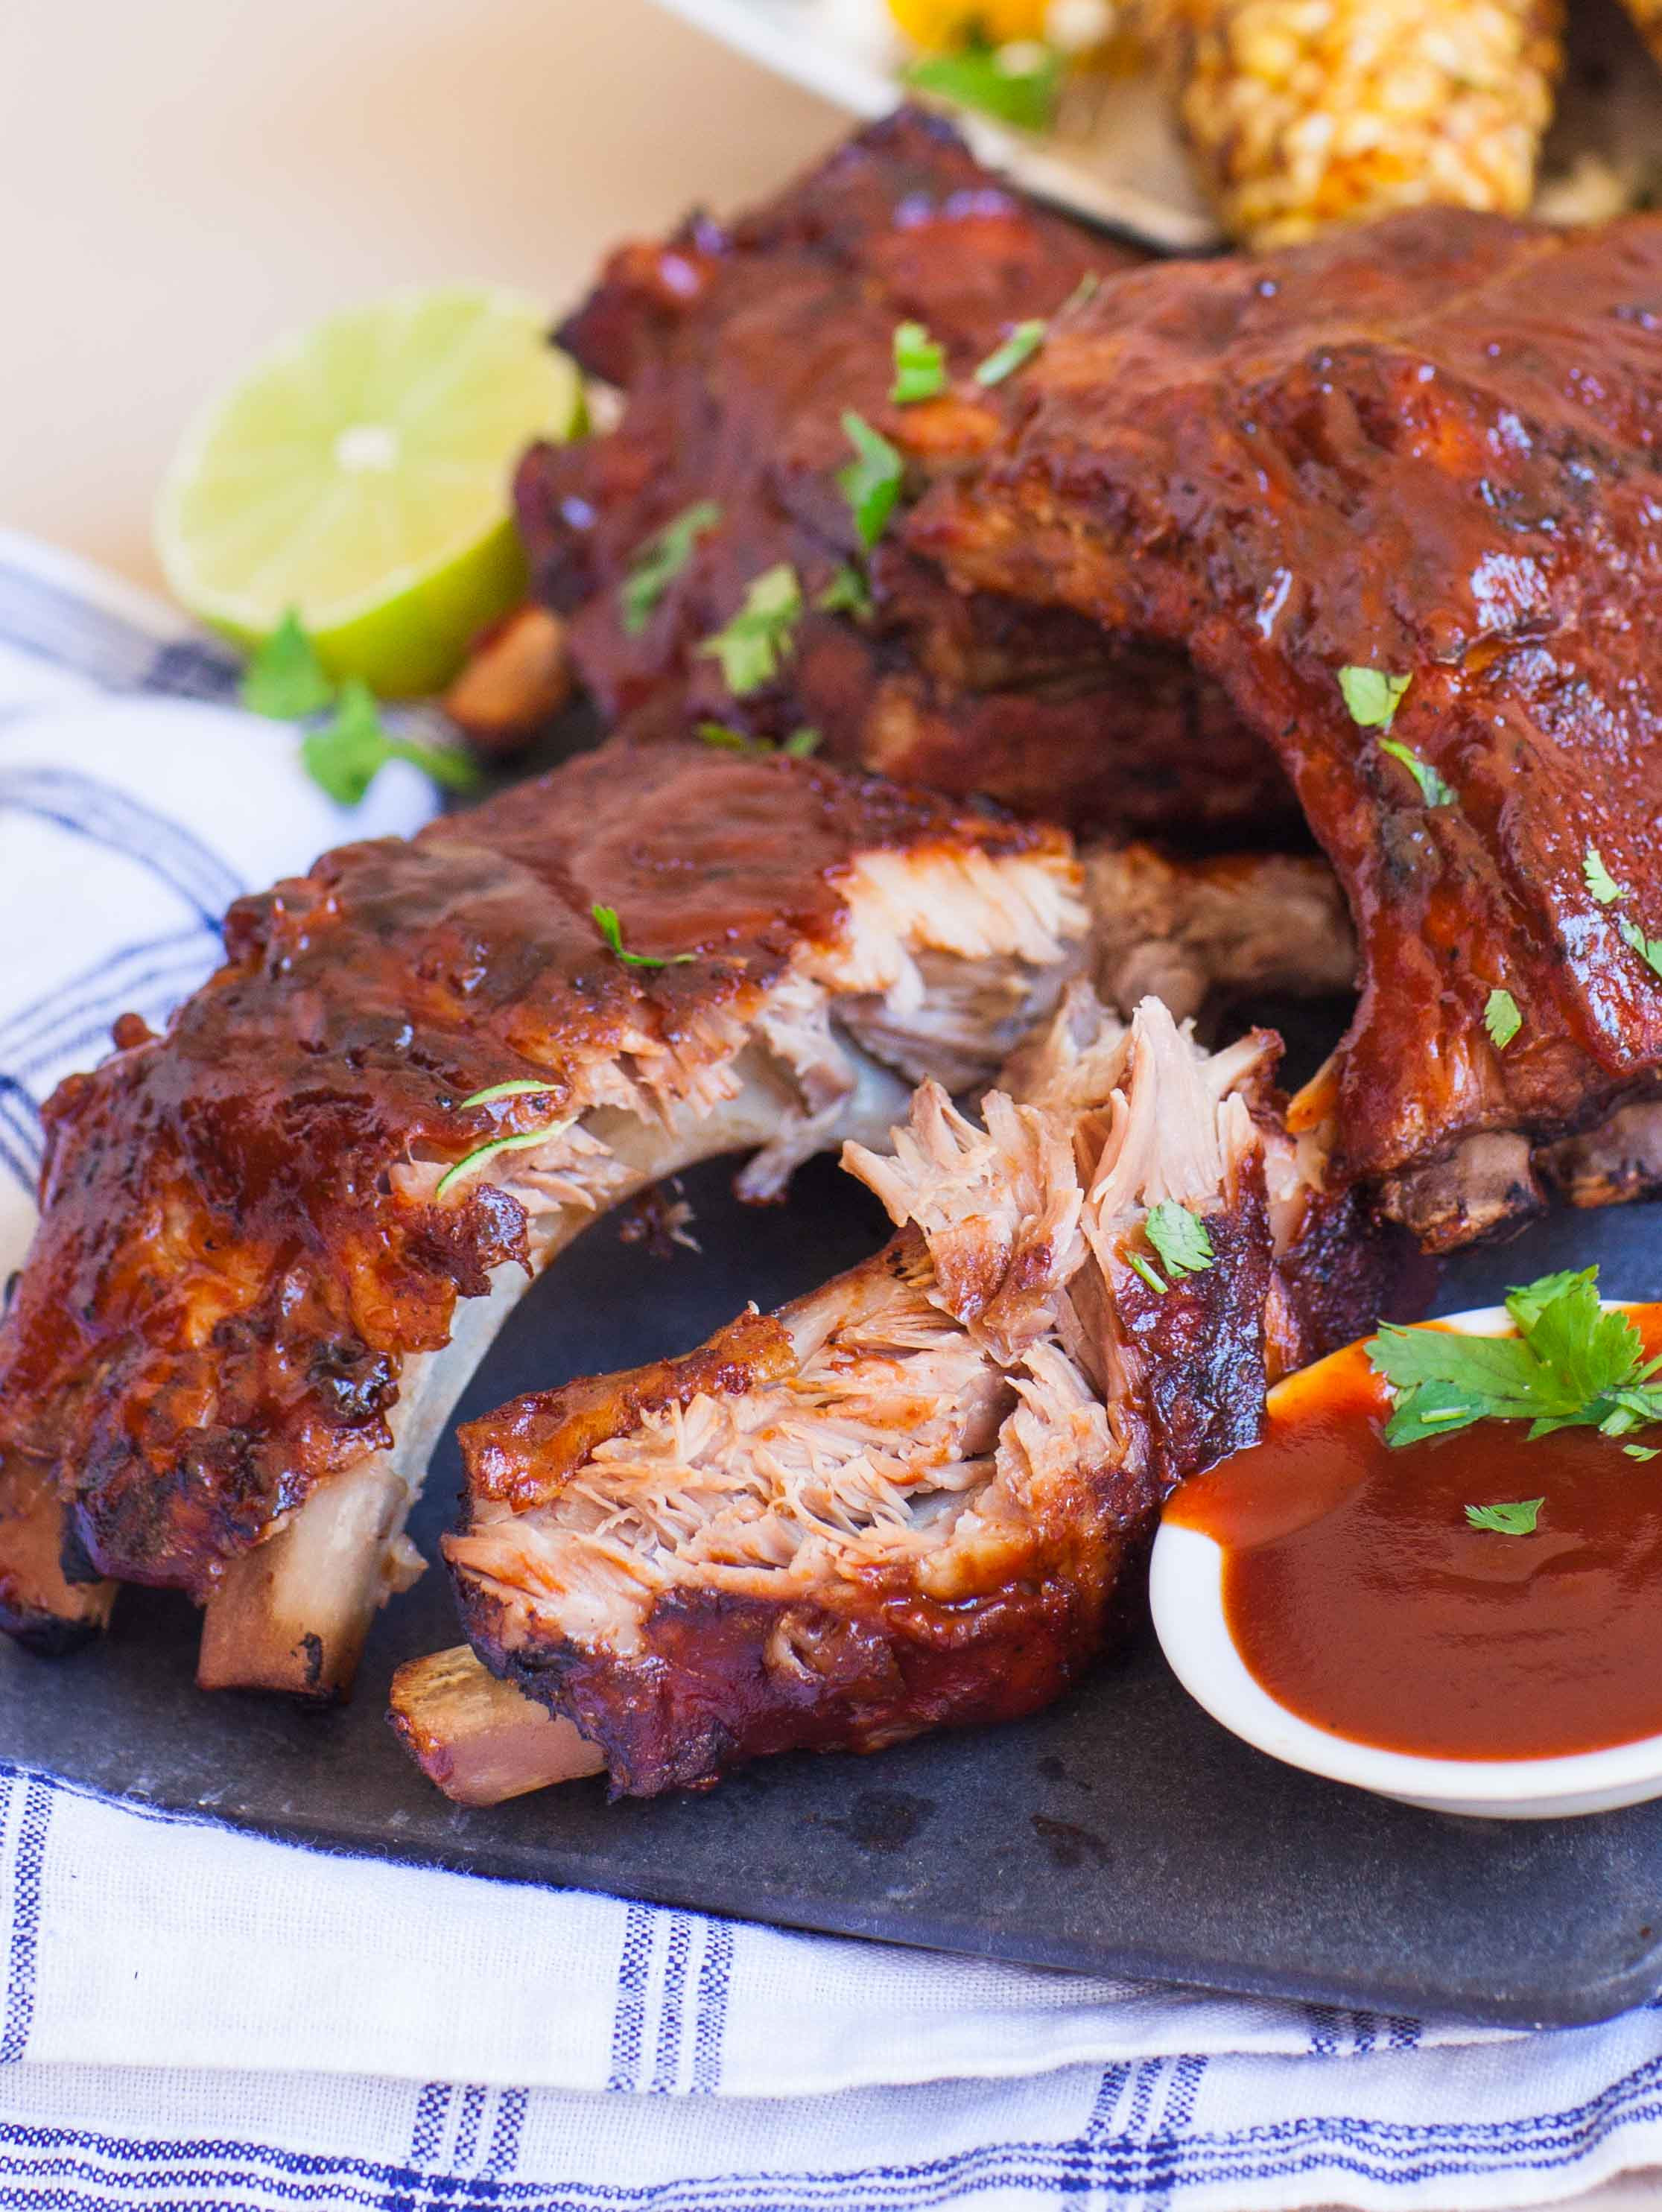 How To Bbq Pork Ribs  BBQ Pork Ribs with Grilled Corn Tatyanas Everyday Food